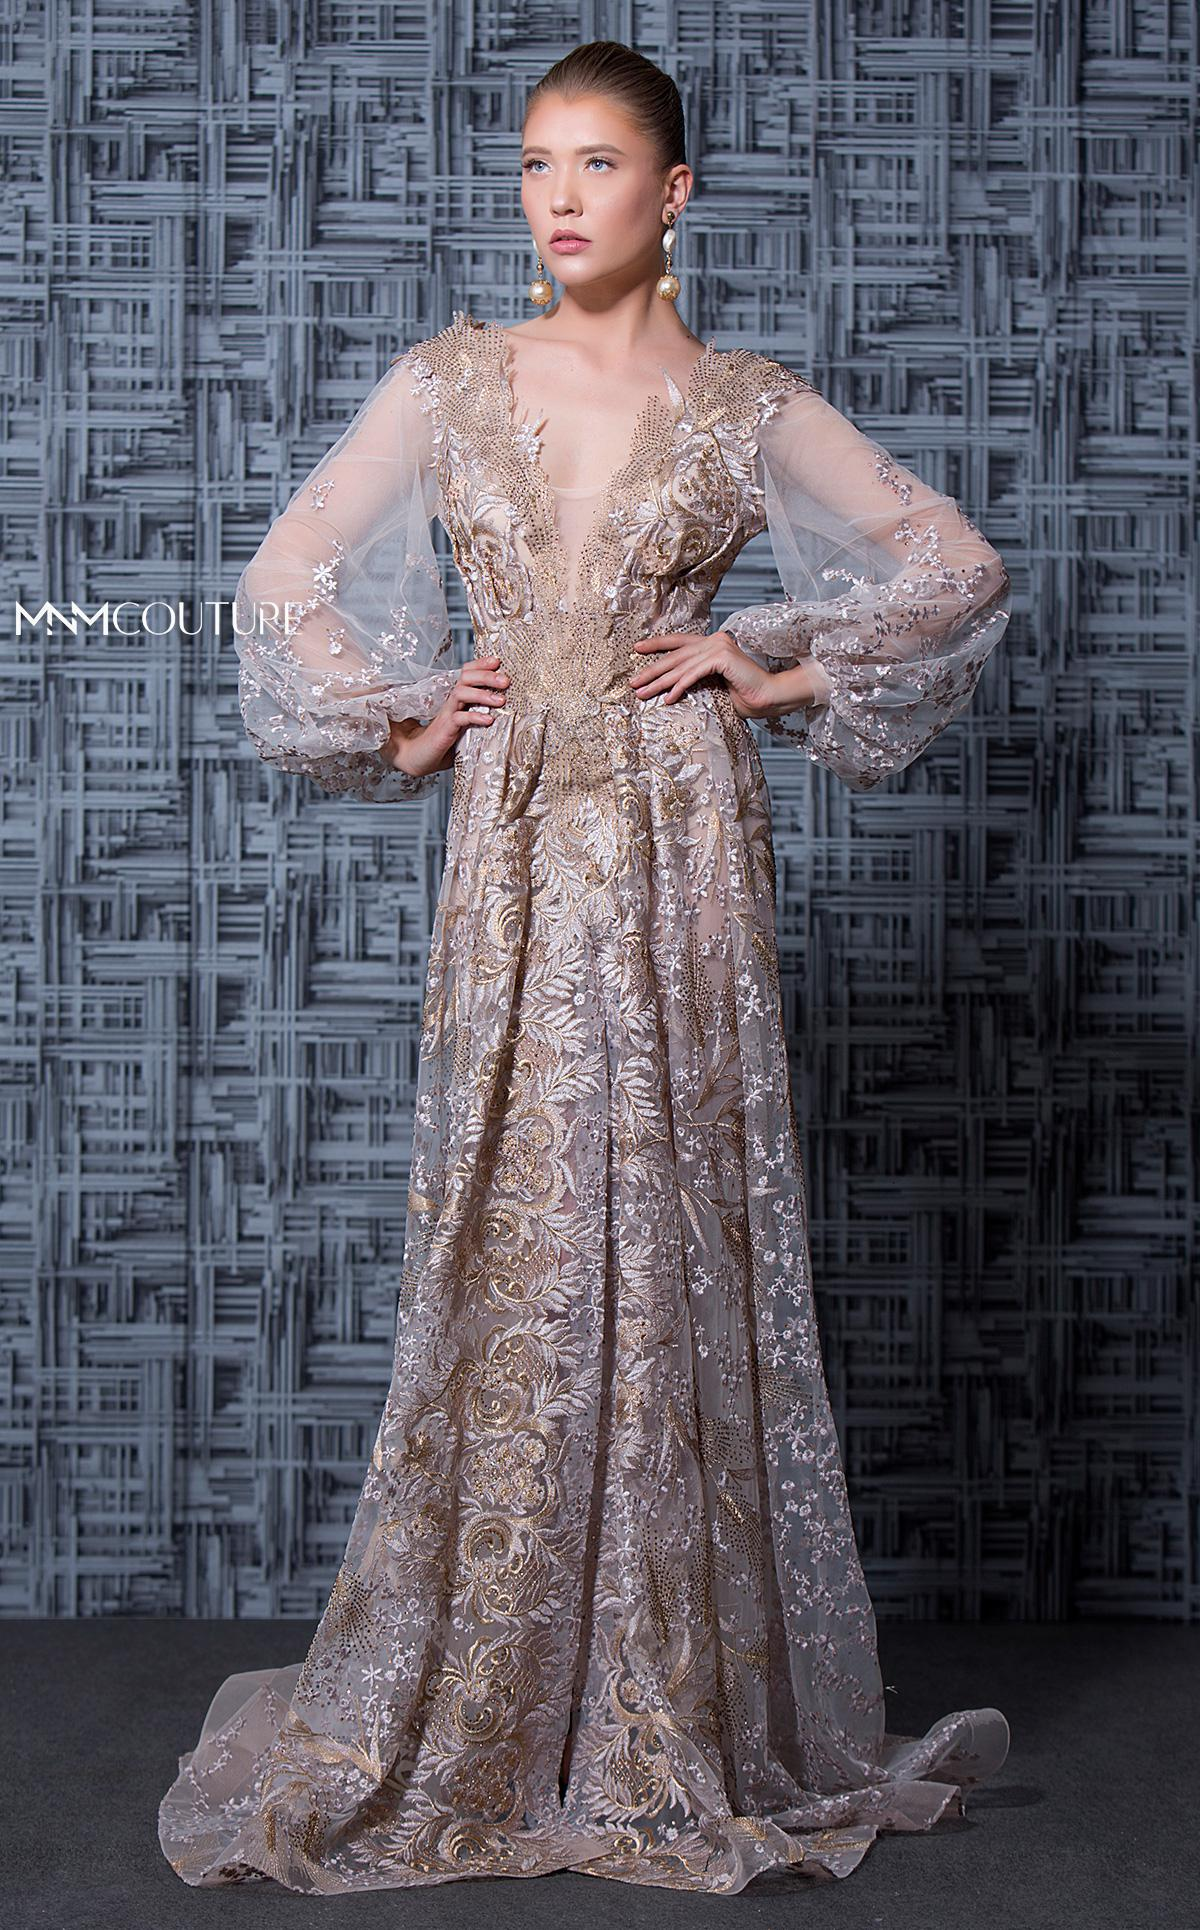 ac84b024b59 Couture Long Evening Dresses - Gomes Weine AG